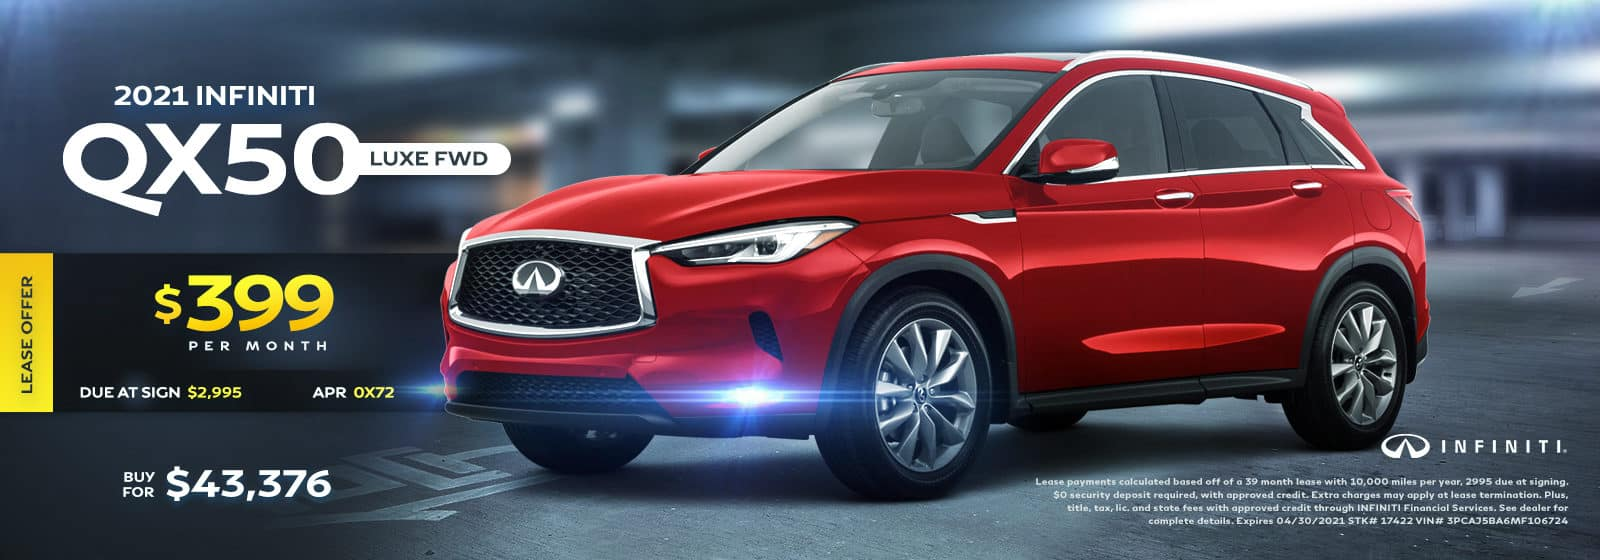 2021 QX50 Luxe AWD April 2021 Offers